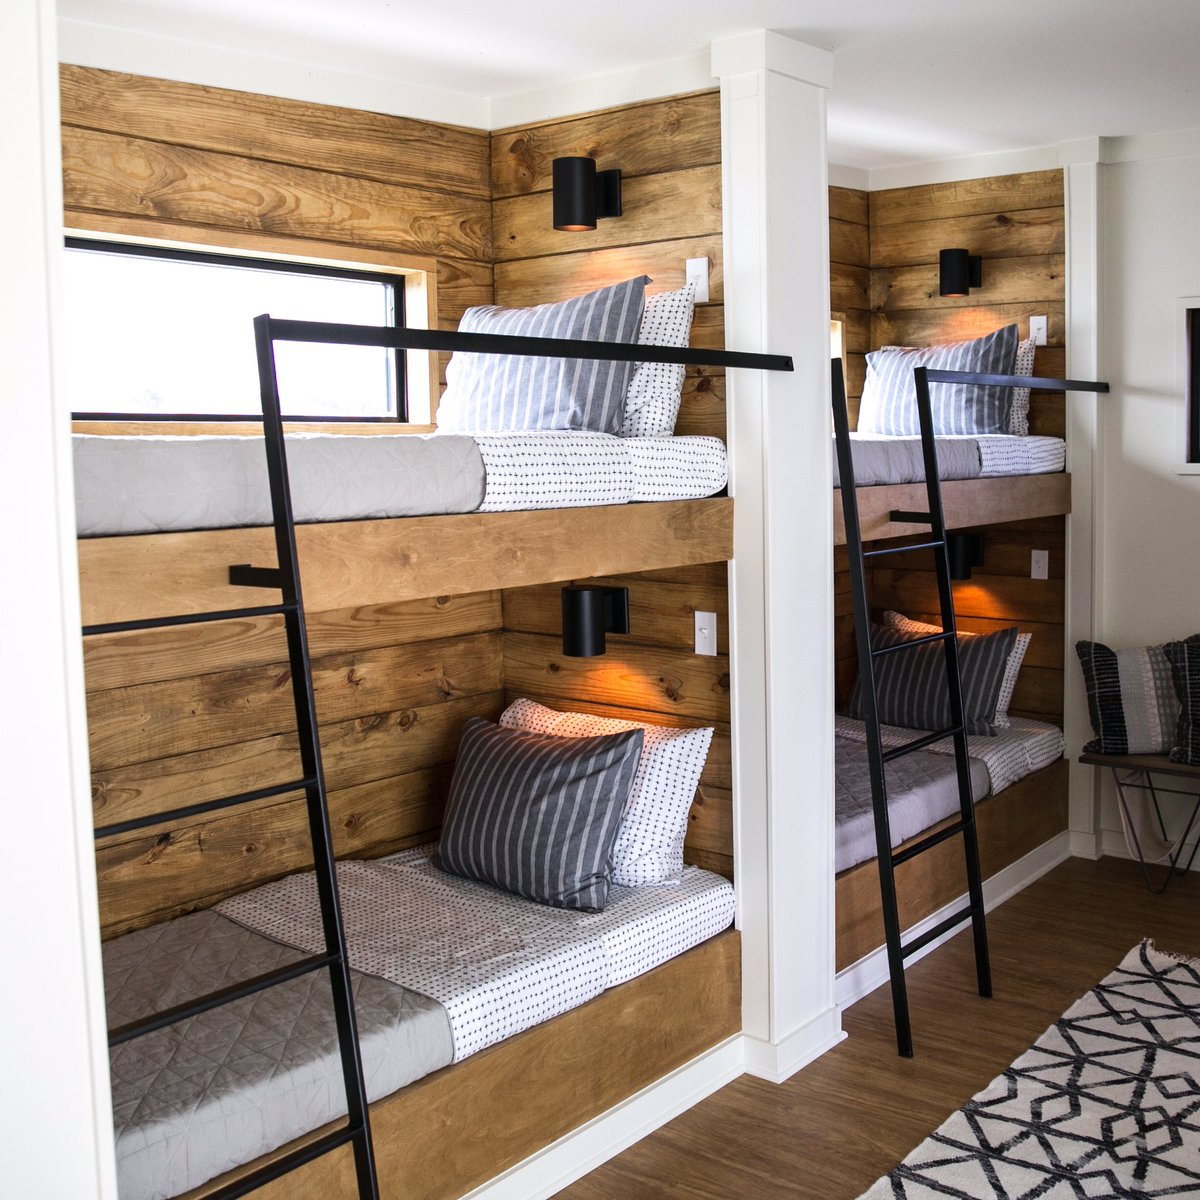 Magnolia Homes On Twitter Built In Bunk Beds Are A Fun Way For The